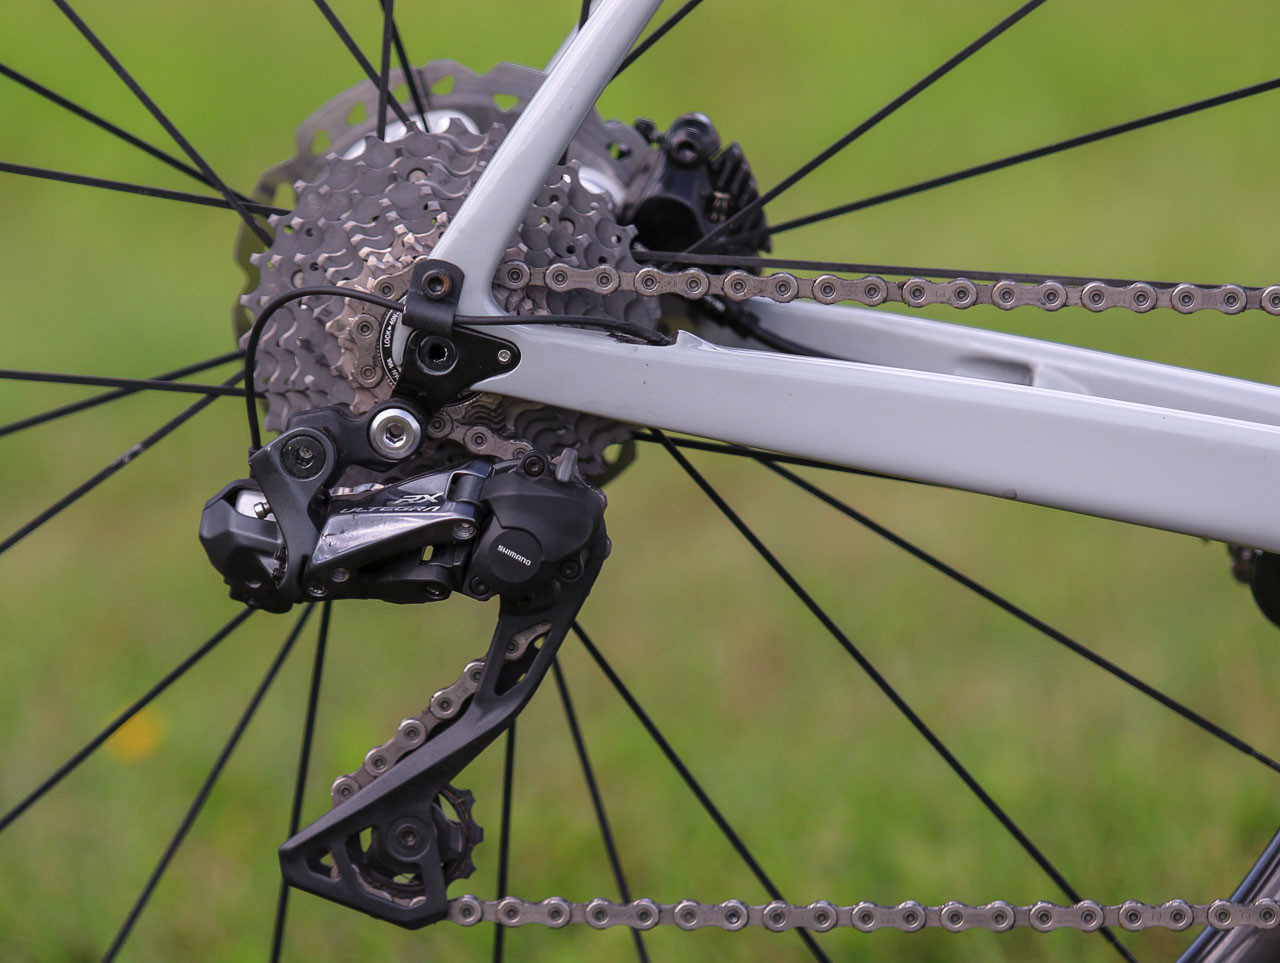 The RX805 rear derailleur uses the same clutch system found in Shimano's mountain bike derailleurs. Kerry Werner's Kona Super Jake Cyclocross Bike, 2018 U.S. World Cups. © D. Mable / Cyclocross Magazine